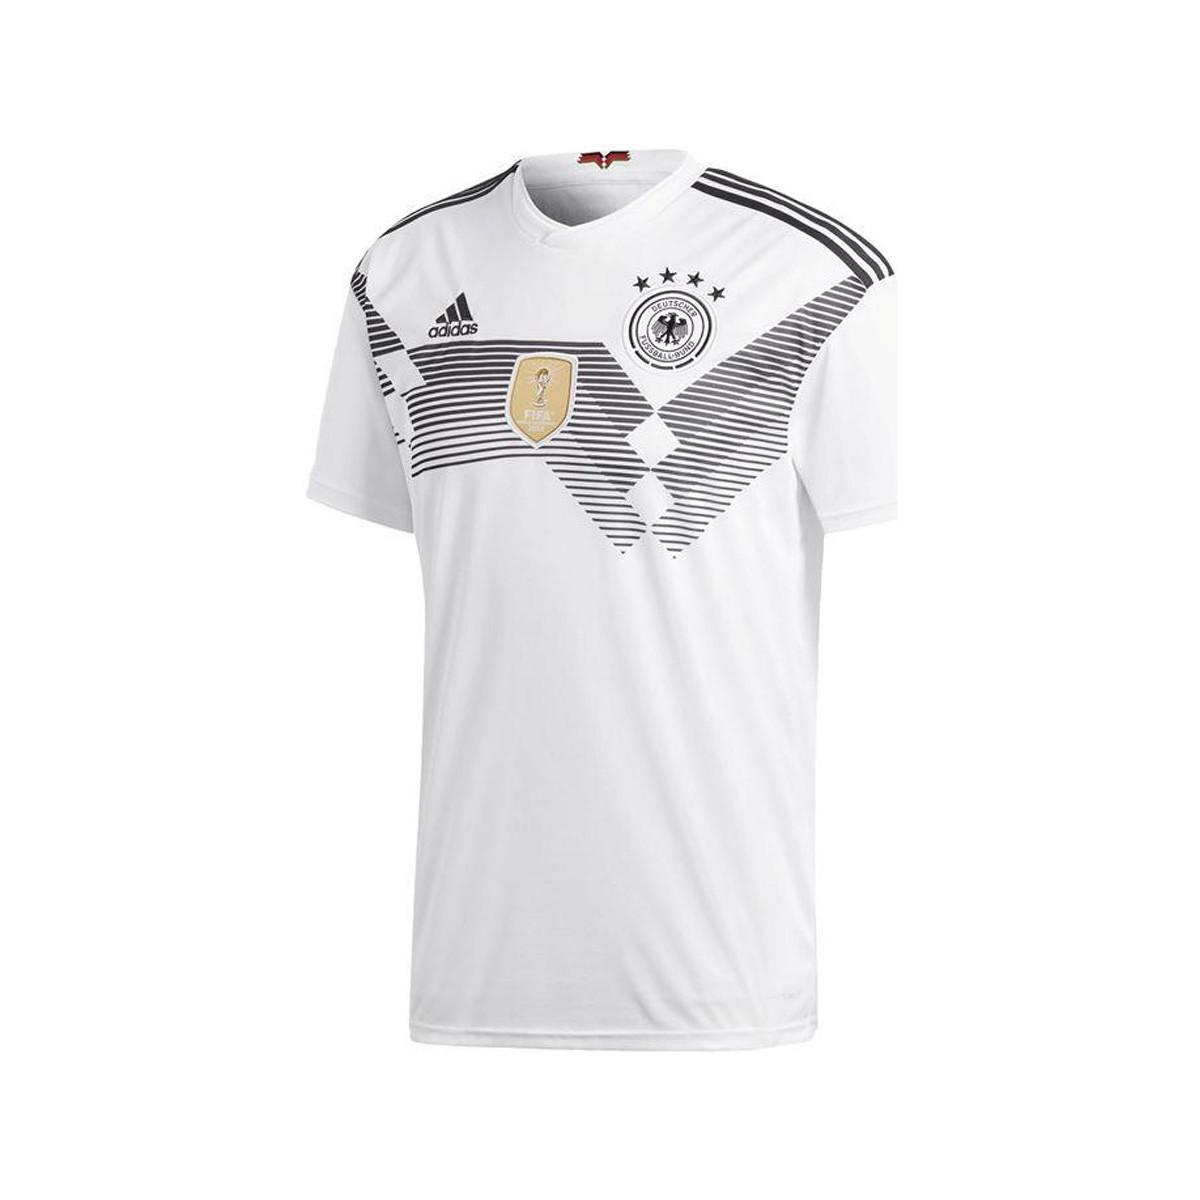 96d97bea7 adidas 2018-2019 Germany Home Football Shirt Men s T Shirt In White ...